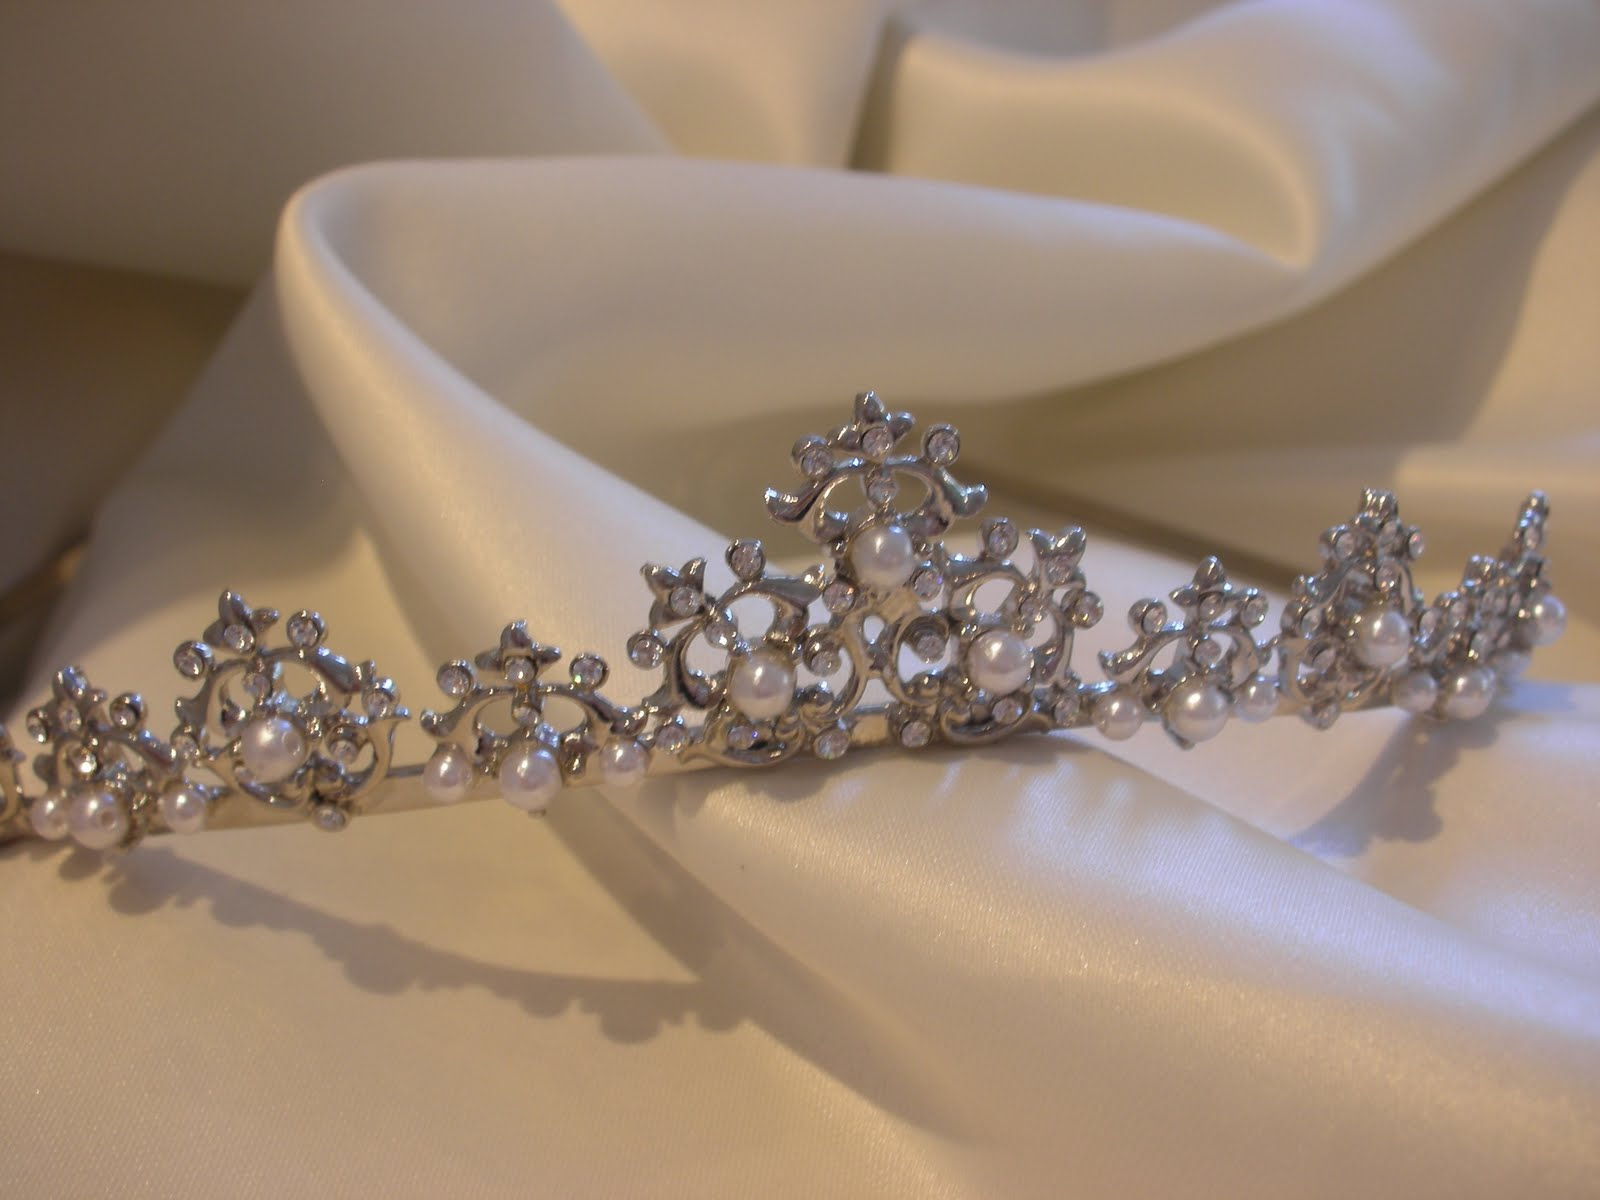 We wedding headpiece jewellery - What S A Bride Who Has Her Heart Set On A Tiara To Do Follow Your Heart And Get A Headpiece With A Subtle Tiara Feel Stay Away From Anything Too Pointy